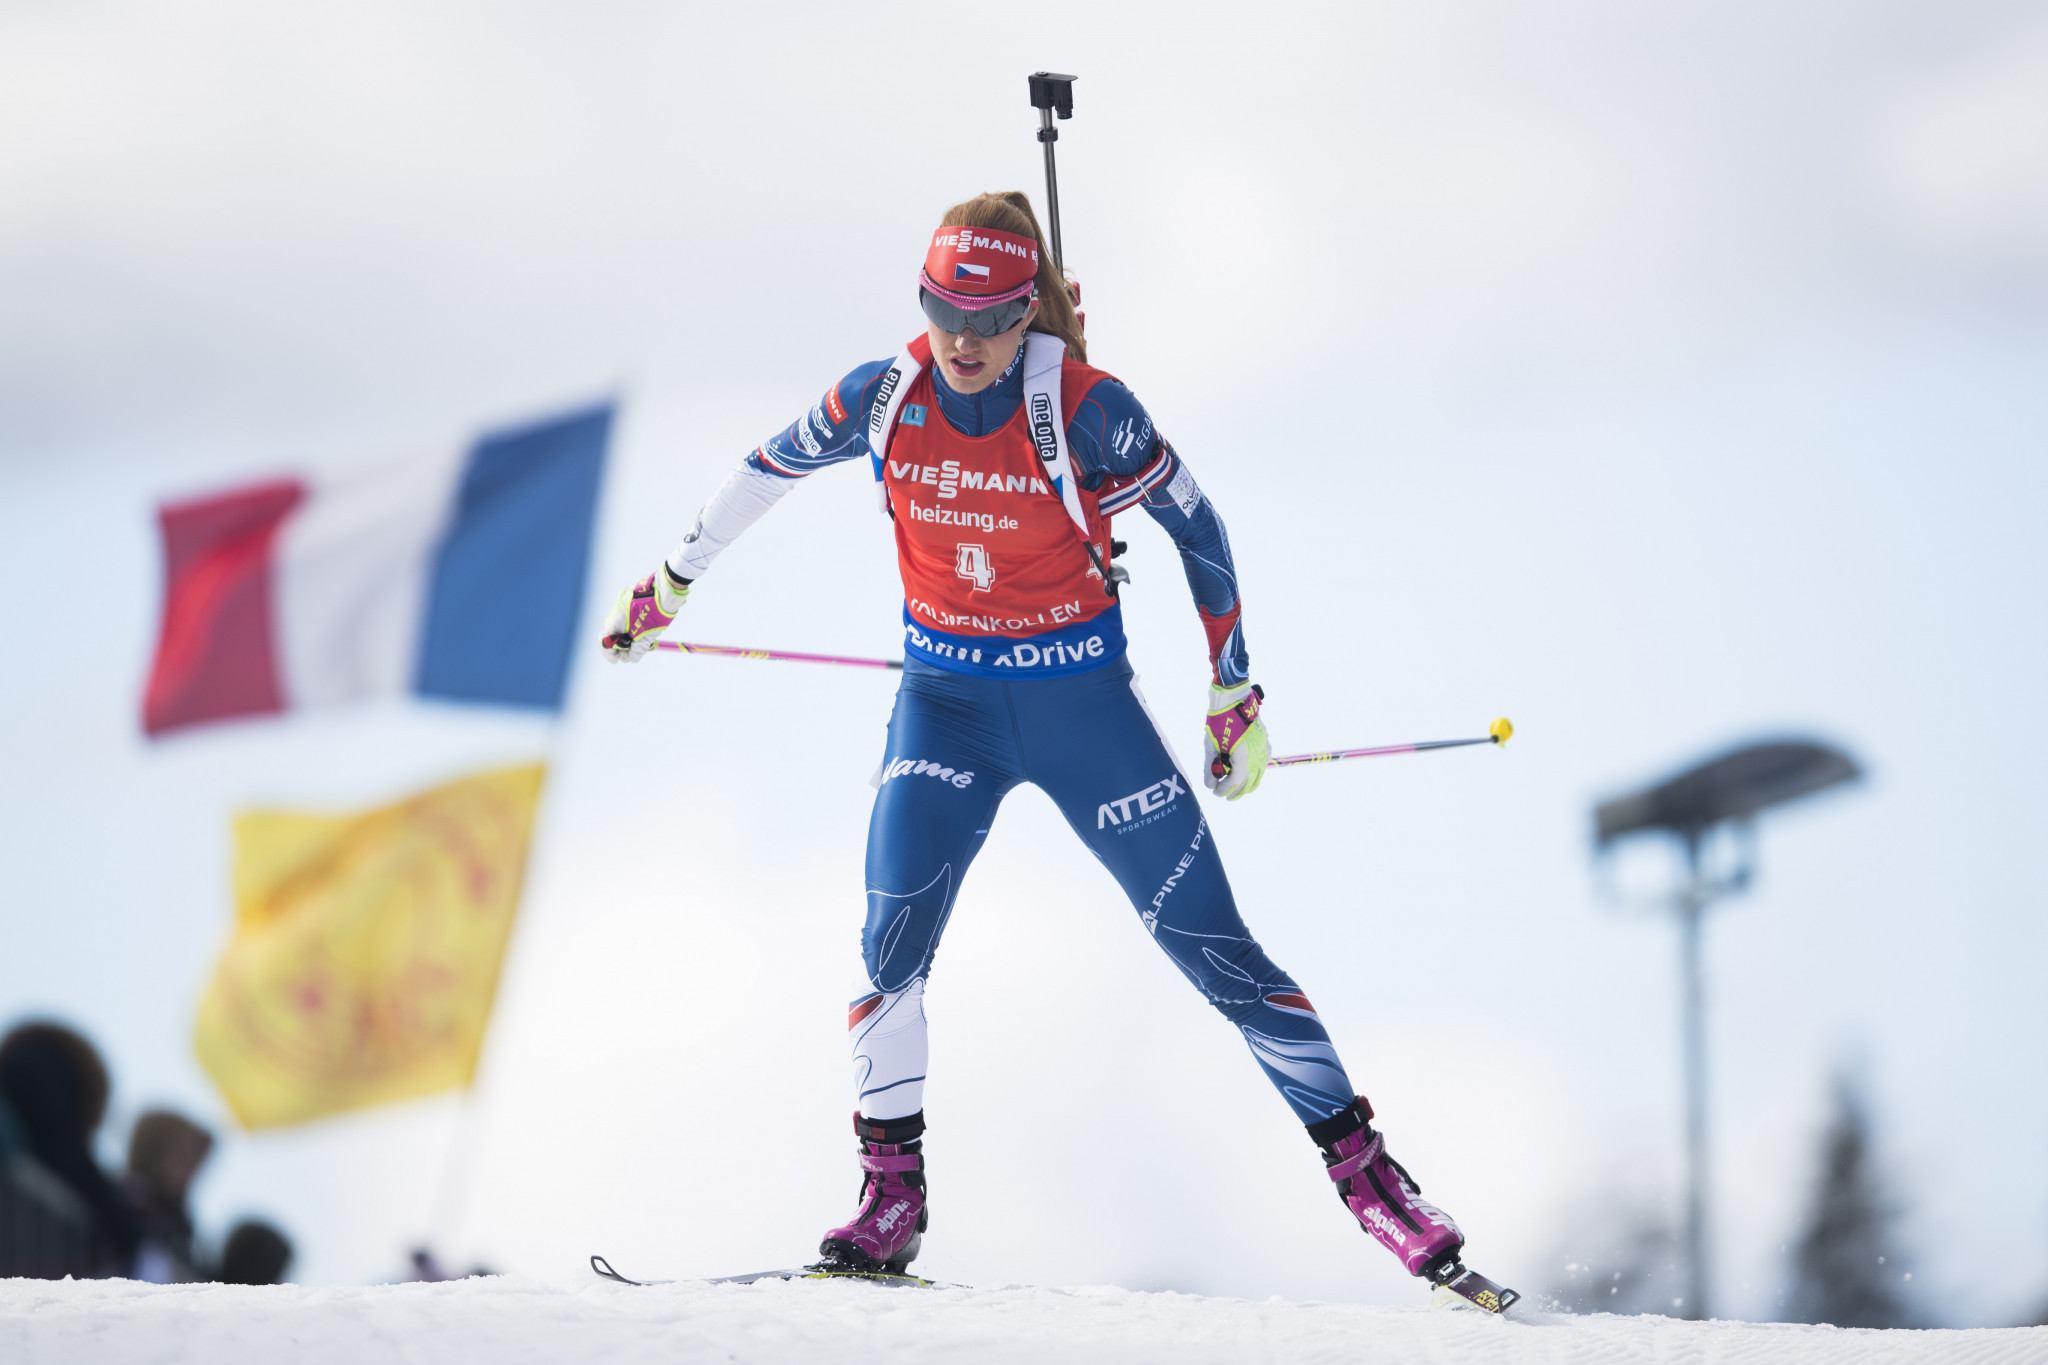 Czech Republic's Gabriela Koukalová finished her biathlon career with two world gold medals and two Olympic silver medals ©Getty Images